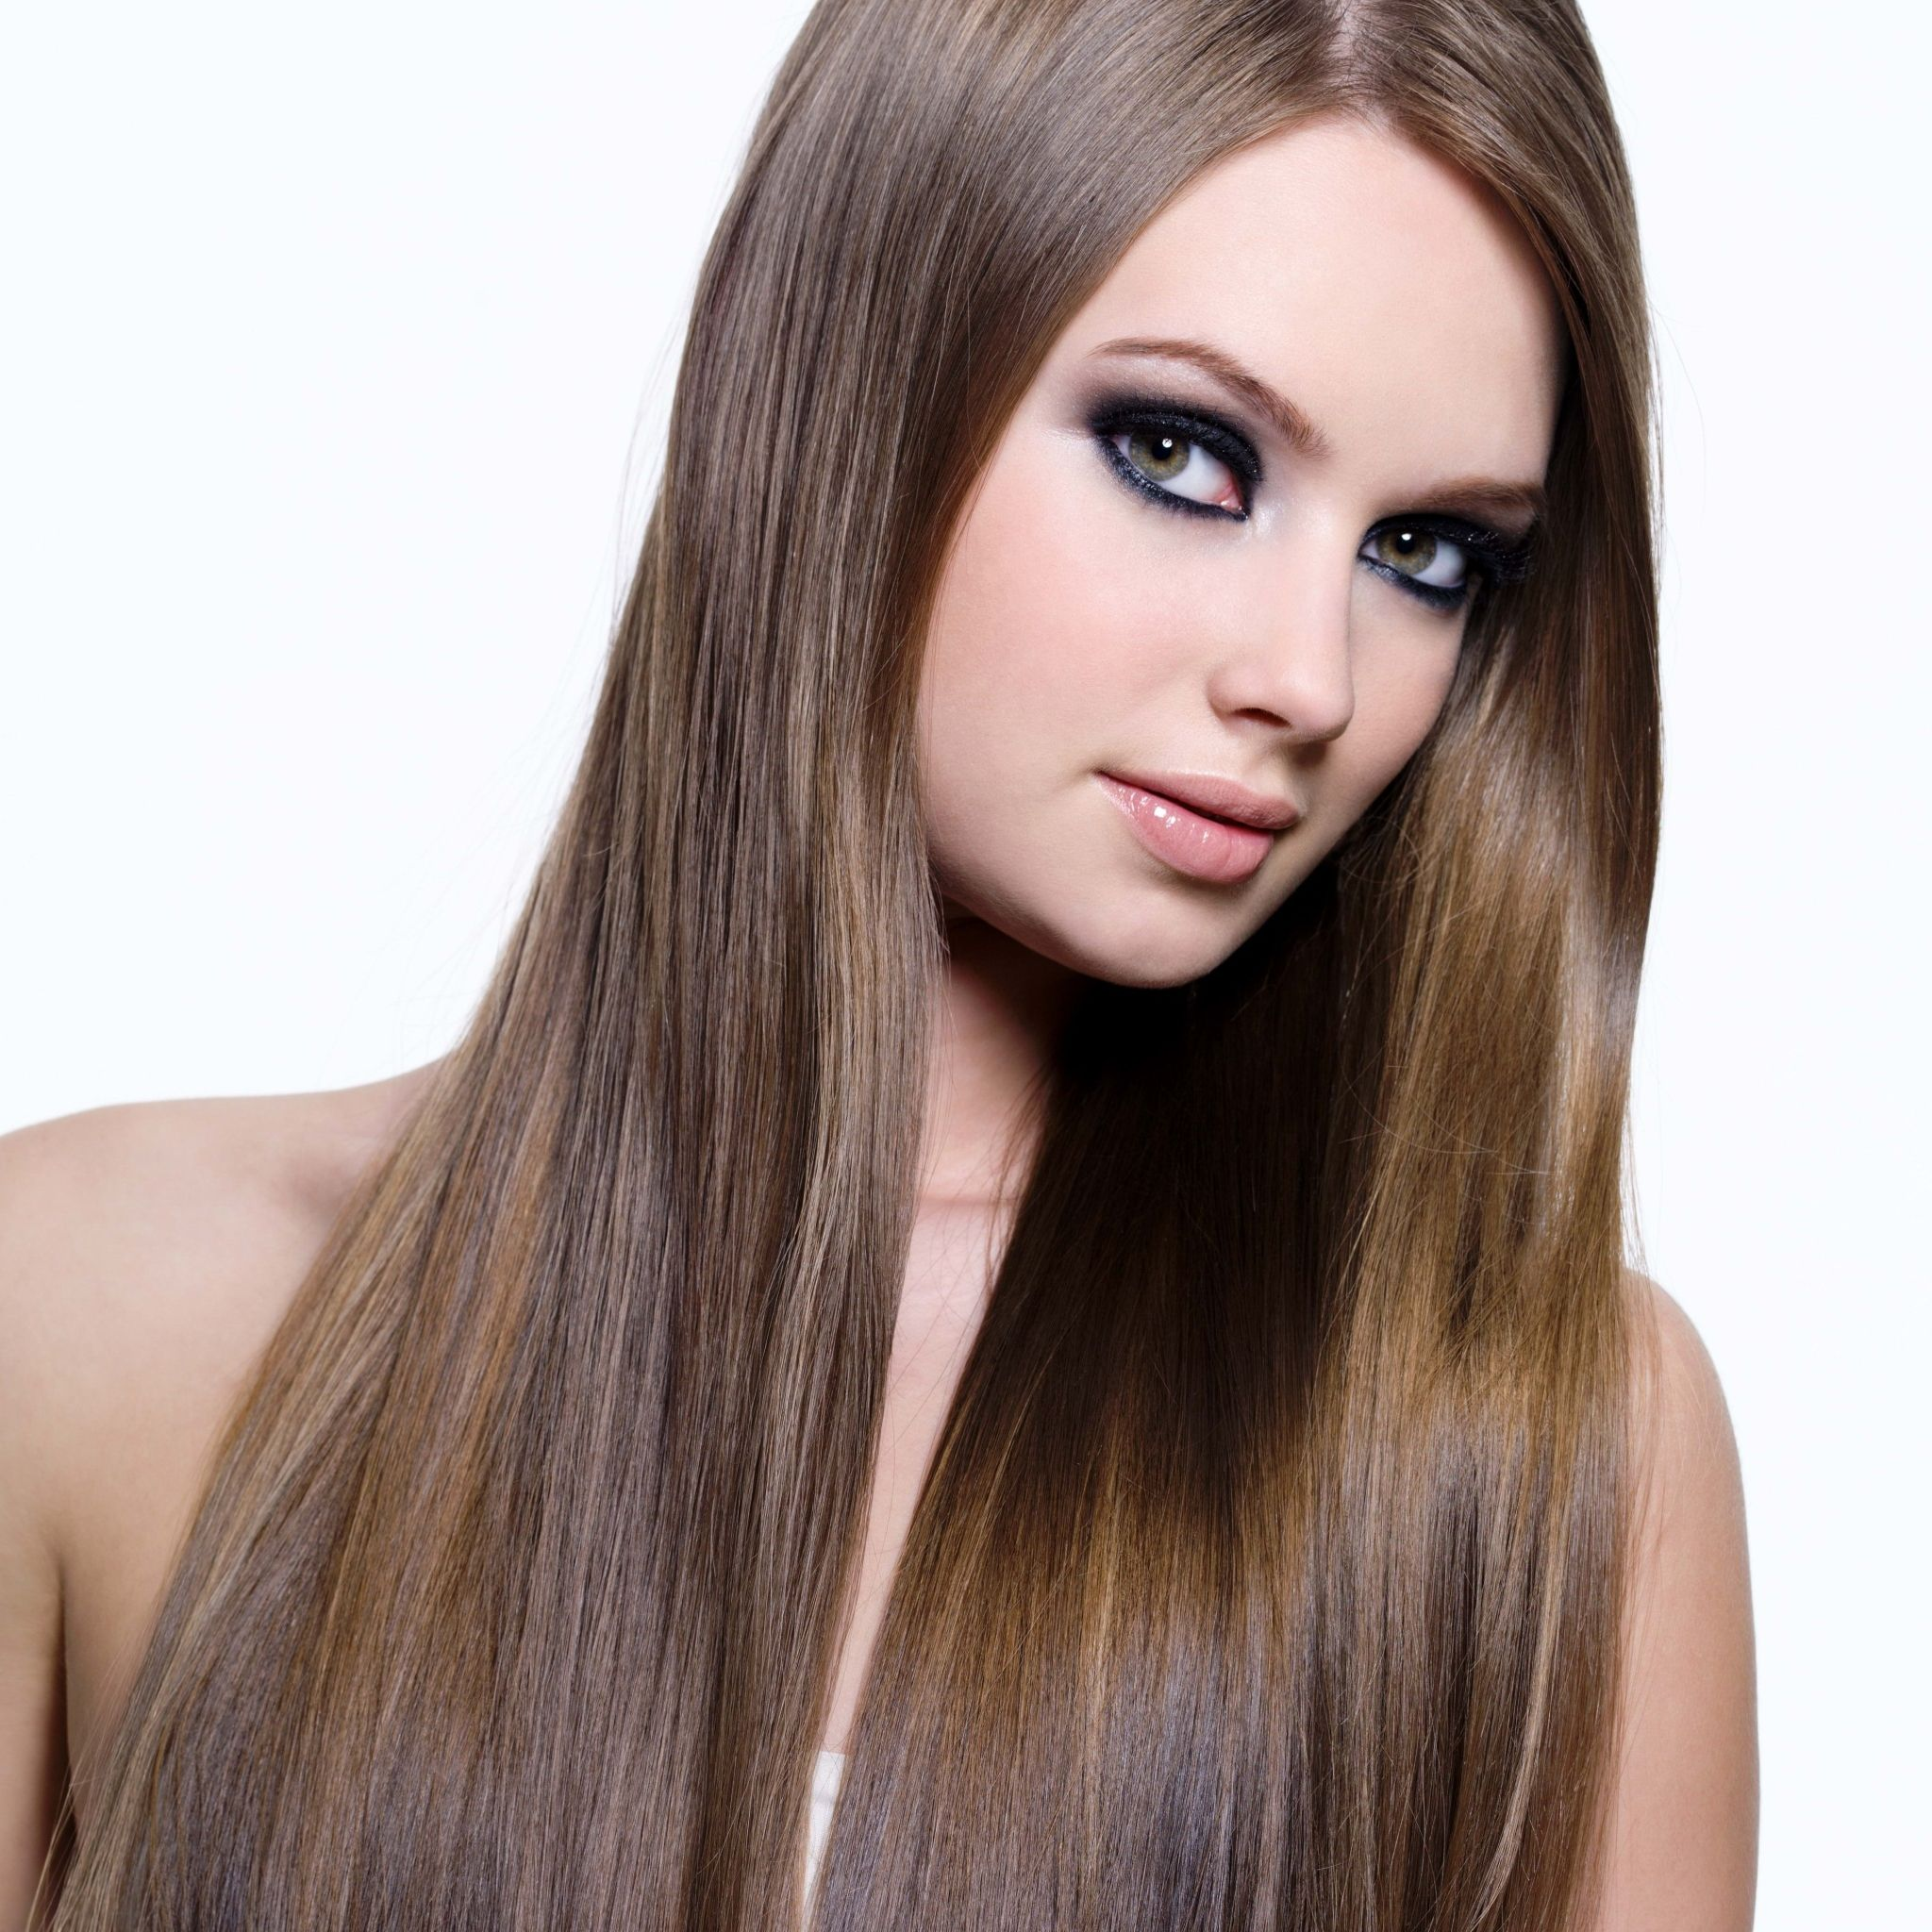 This is the image gallery of Cute hairstyles for long hair 2014 You